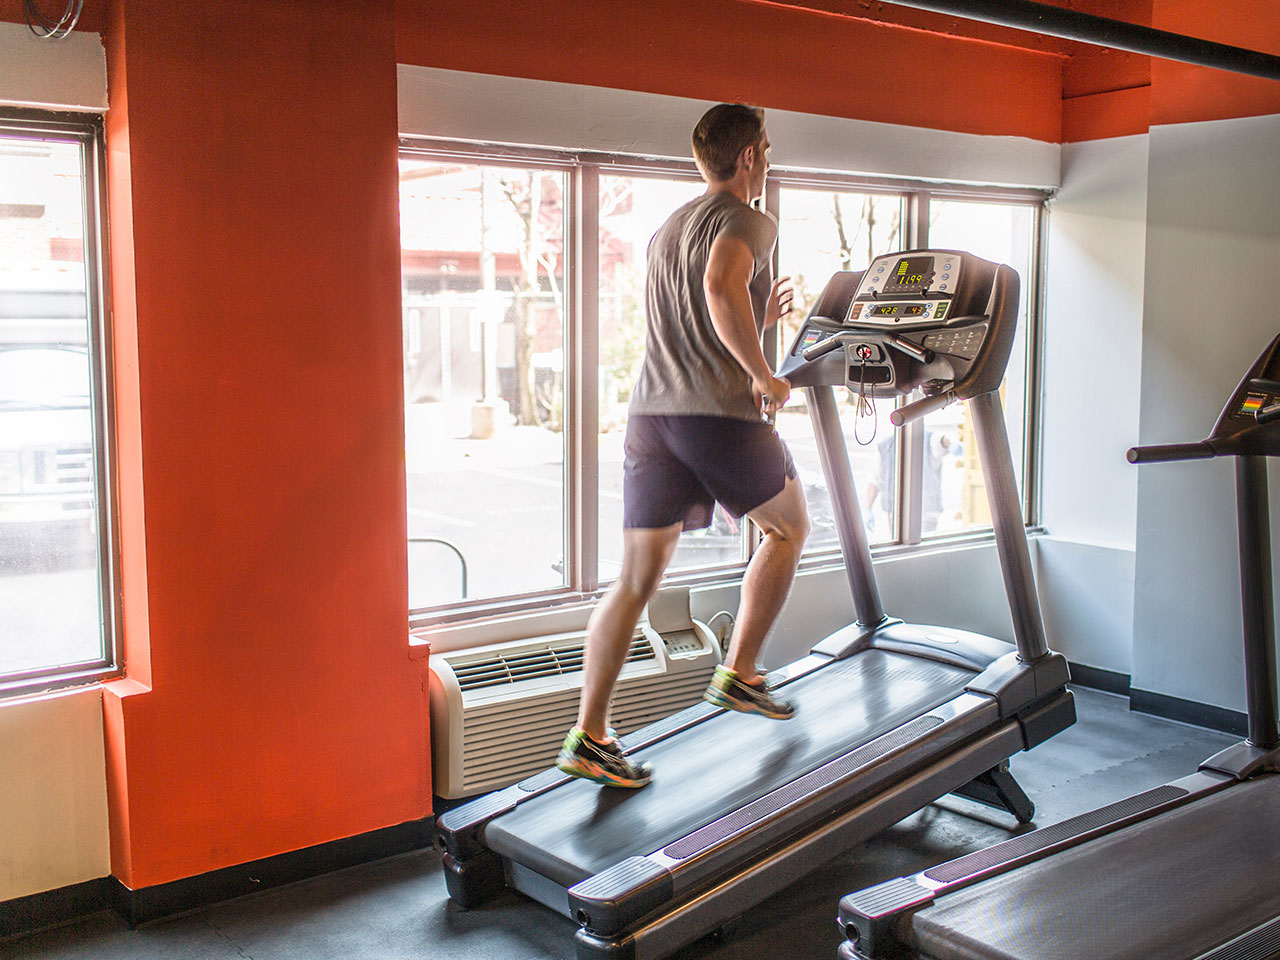 7 High Octane Hiit Workouts That Burn 500 Calories Timers For Tabata And Circuit Training Are Included Steve Prezant Getty Images 1